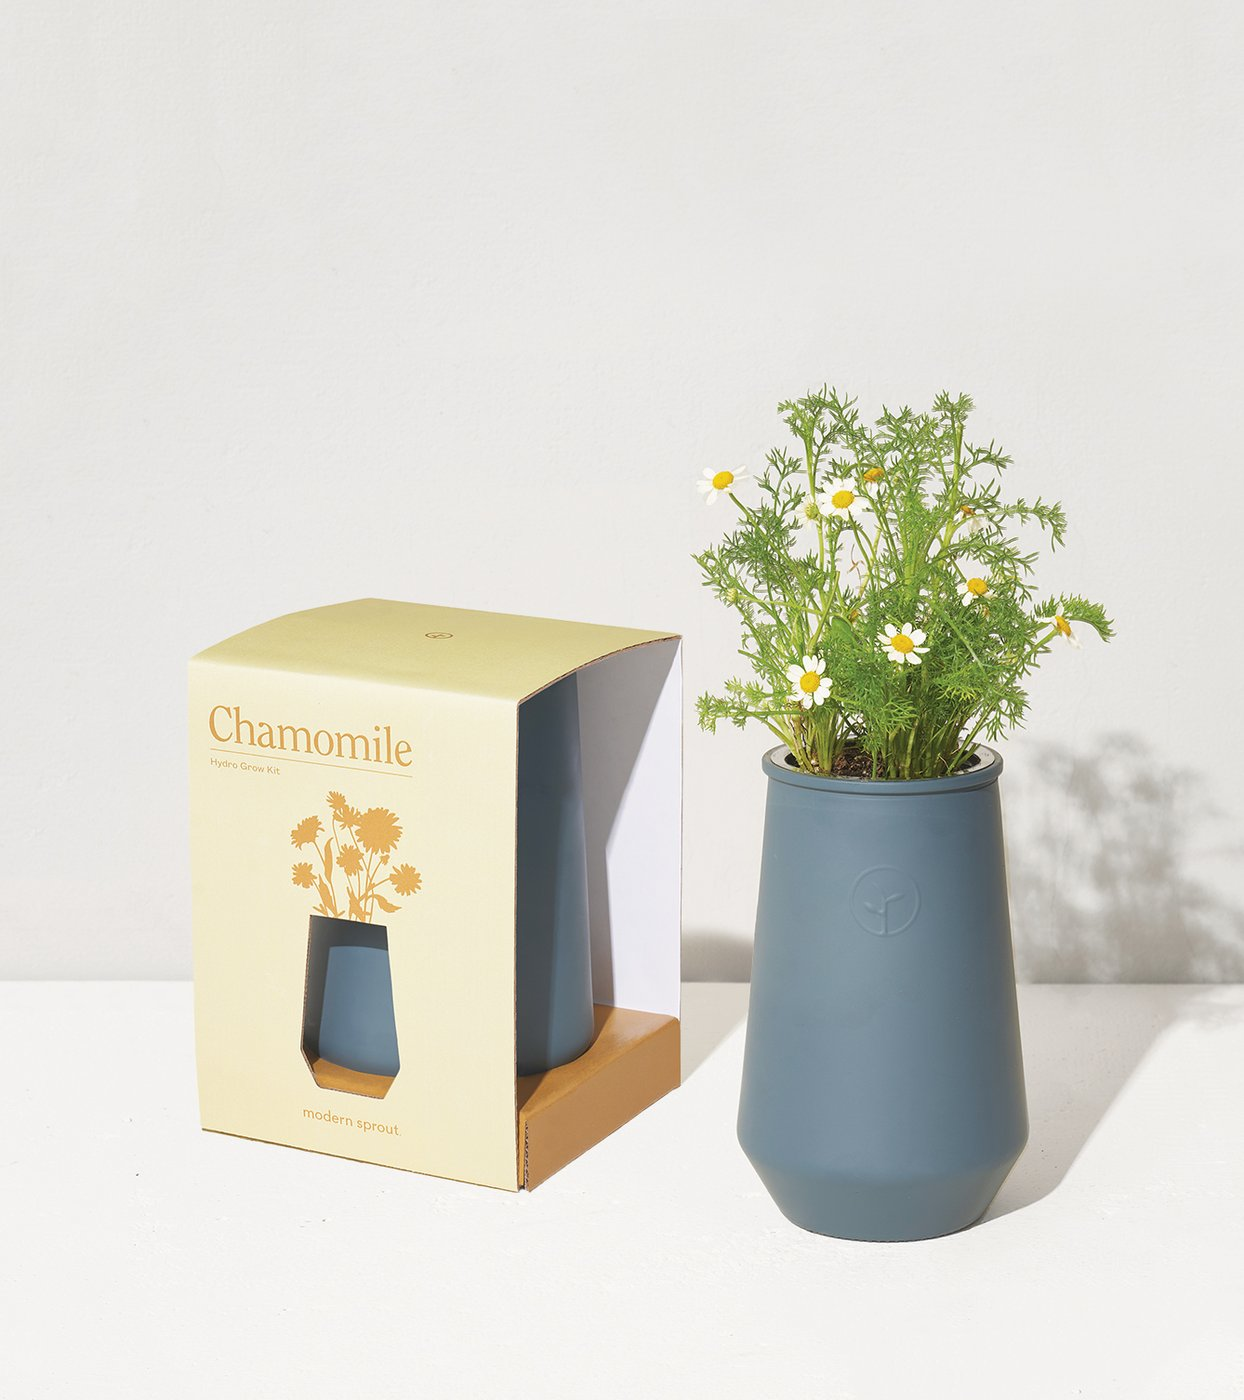 Smoked Glass Tapered Tumbler Grow Kit - Chamomile